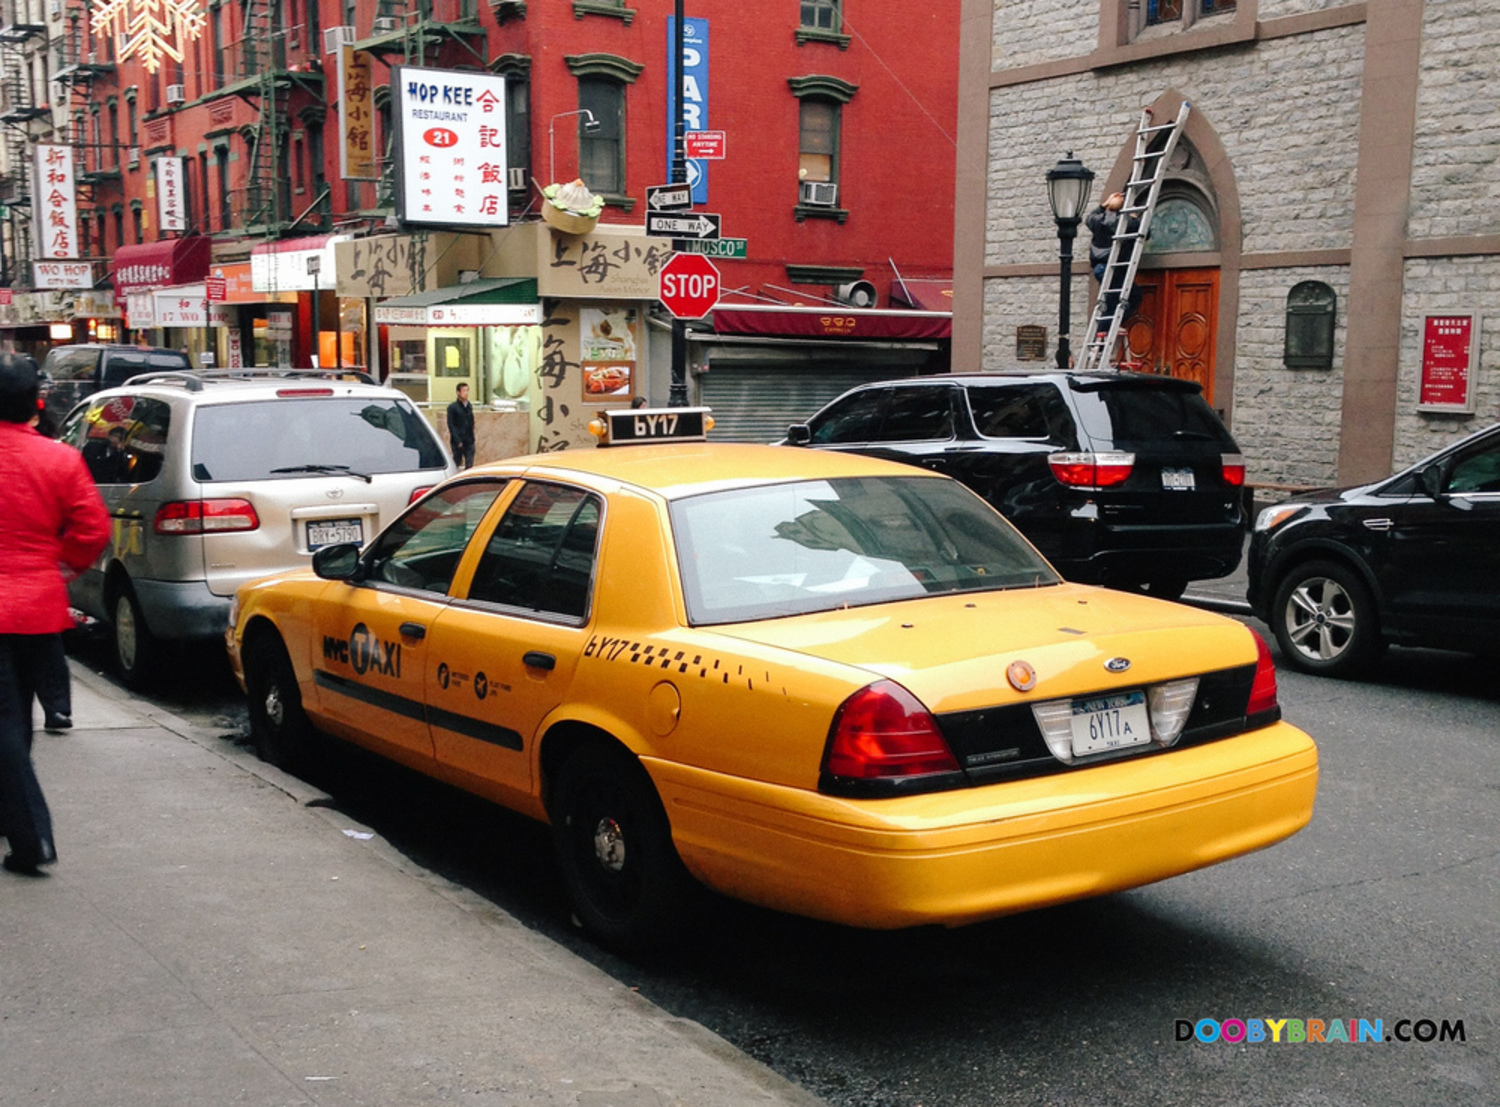 Photo guide to NYPD's fleet of undercover taxi cabs